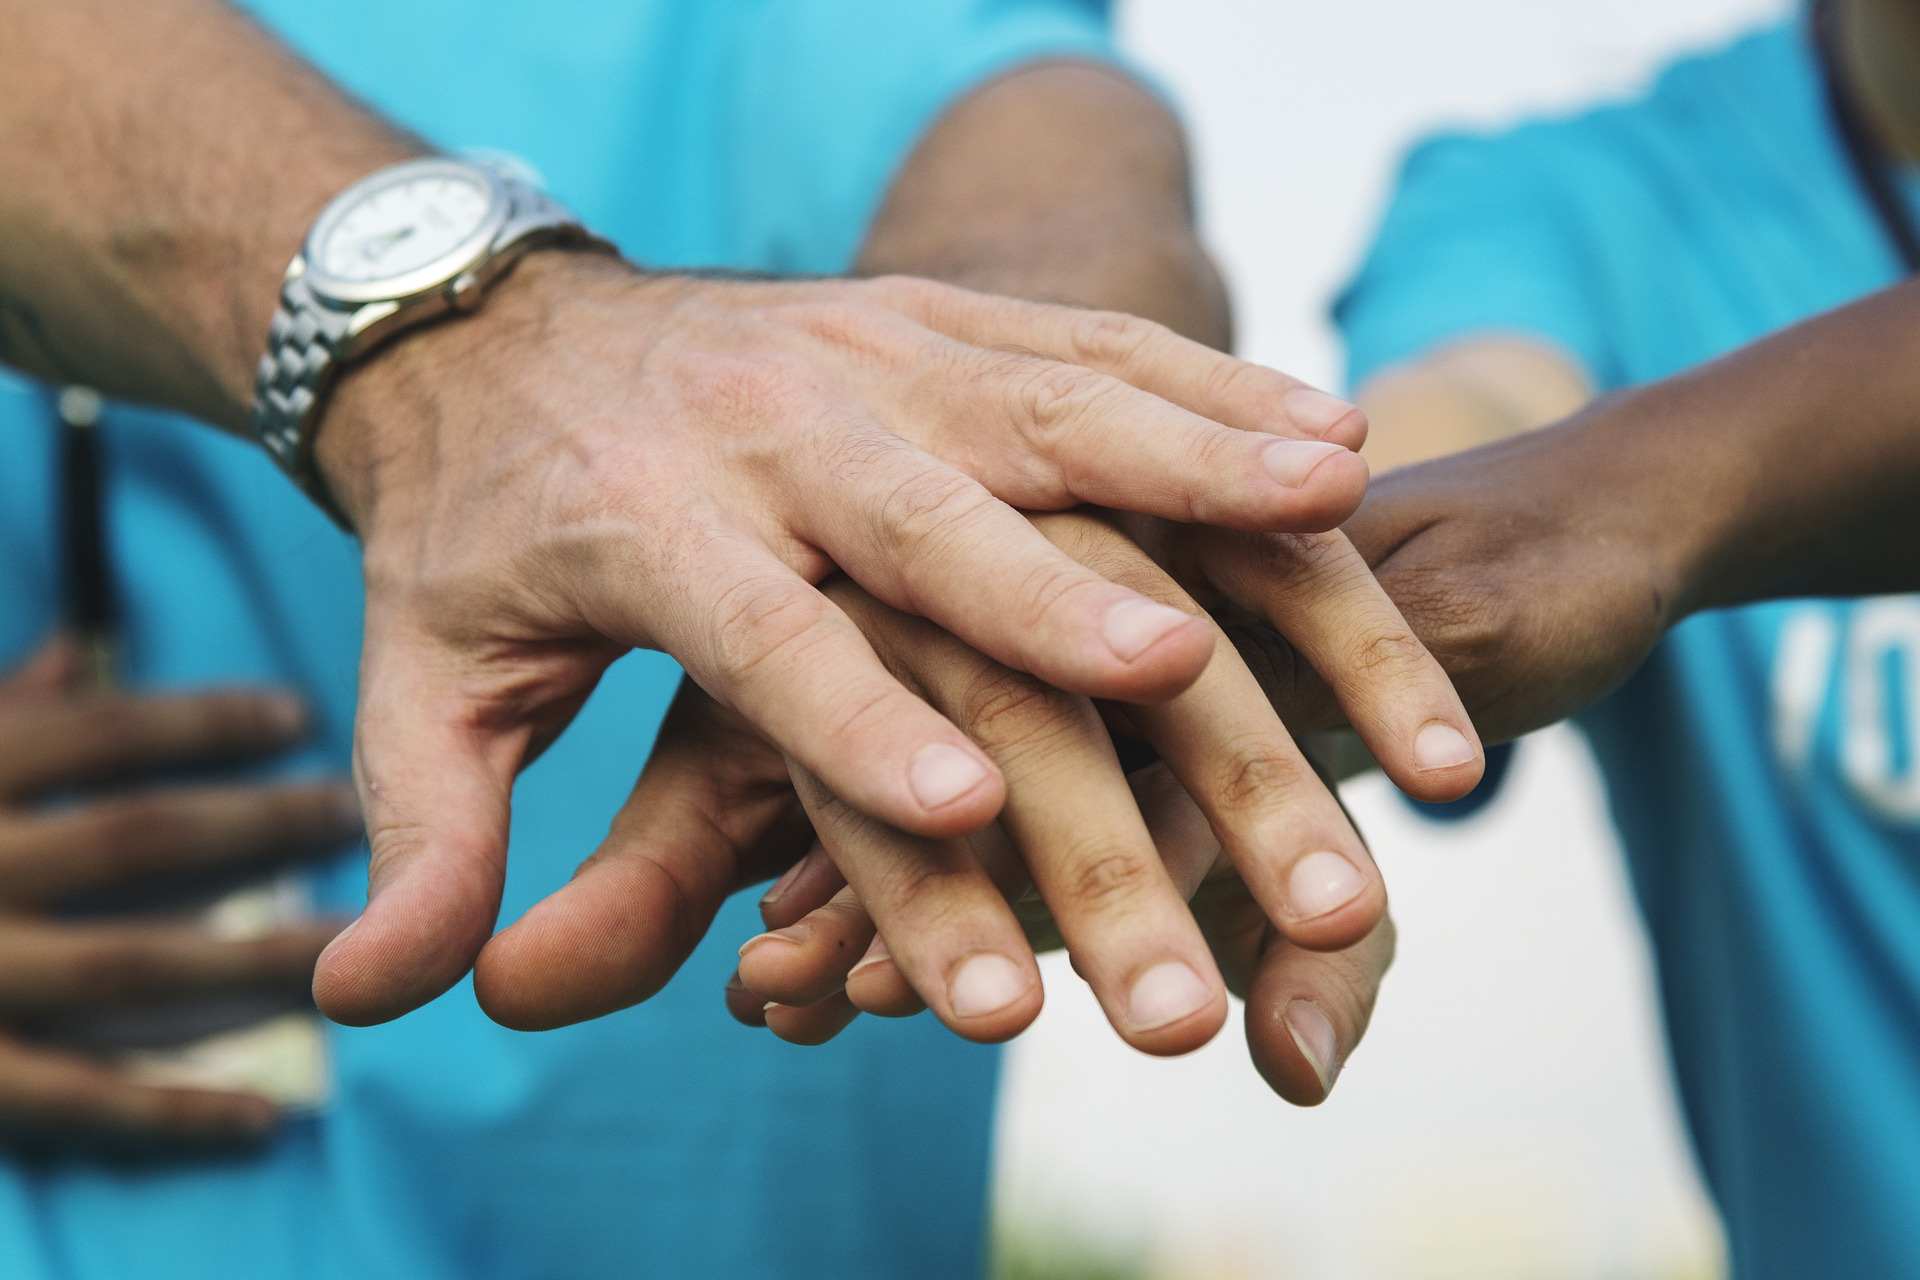 Hands in A Circle Depicts Teamwork